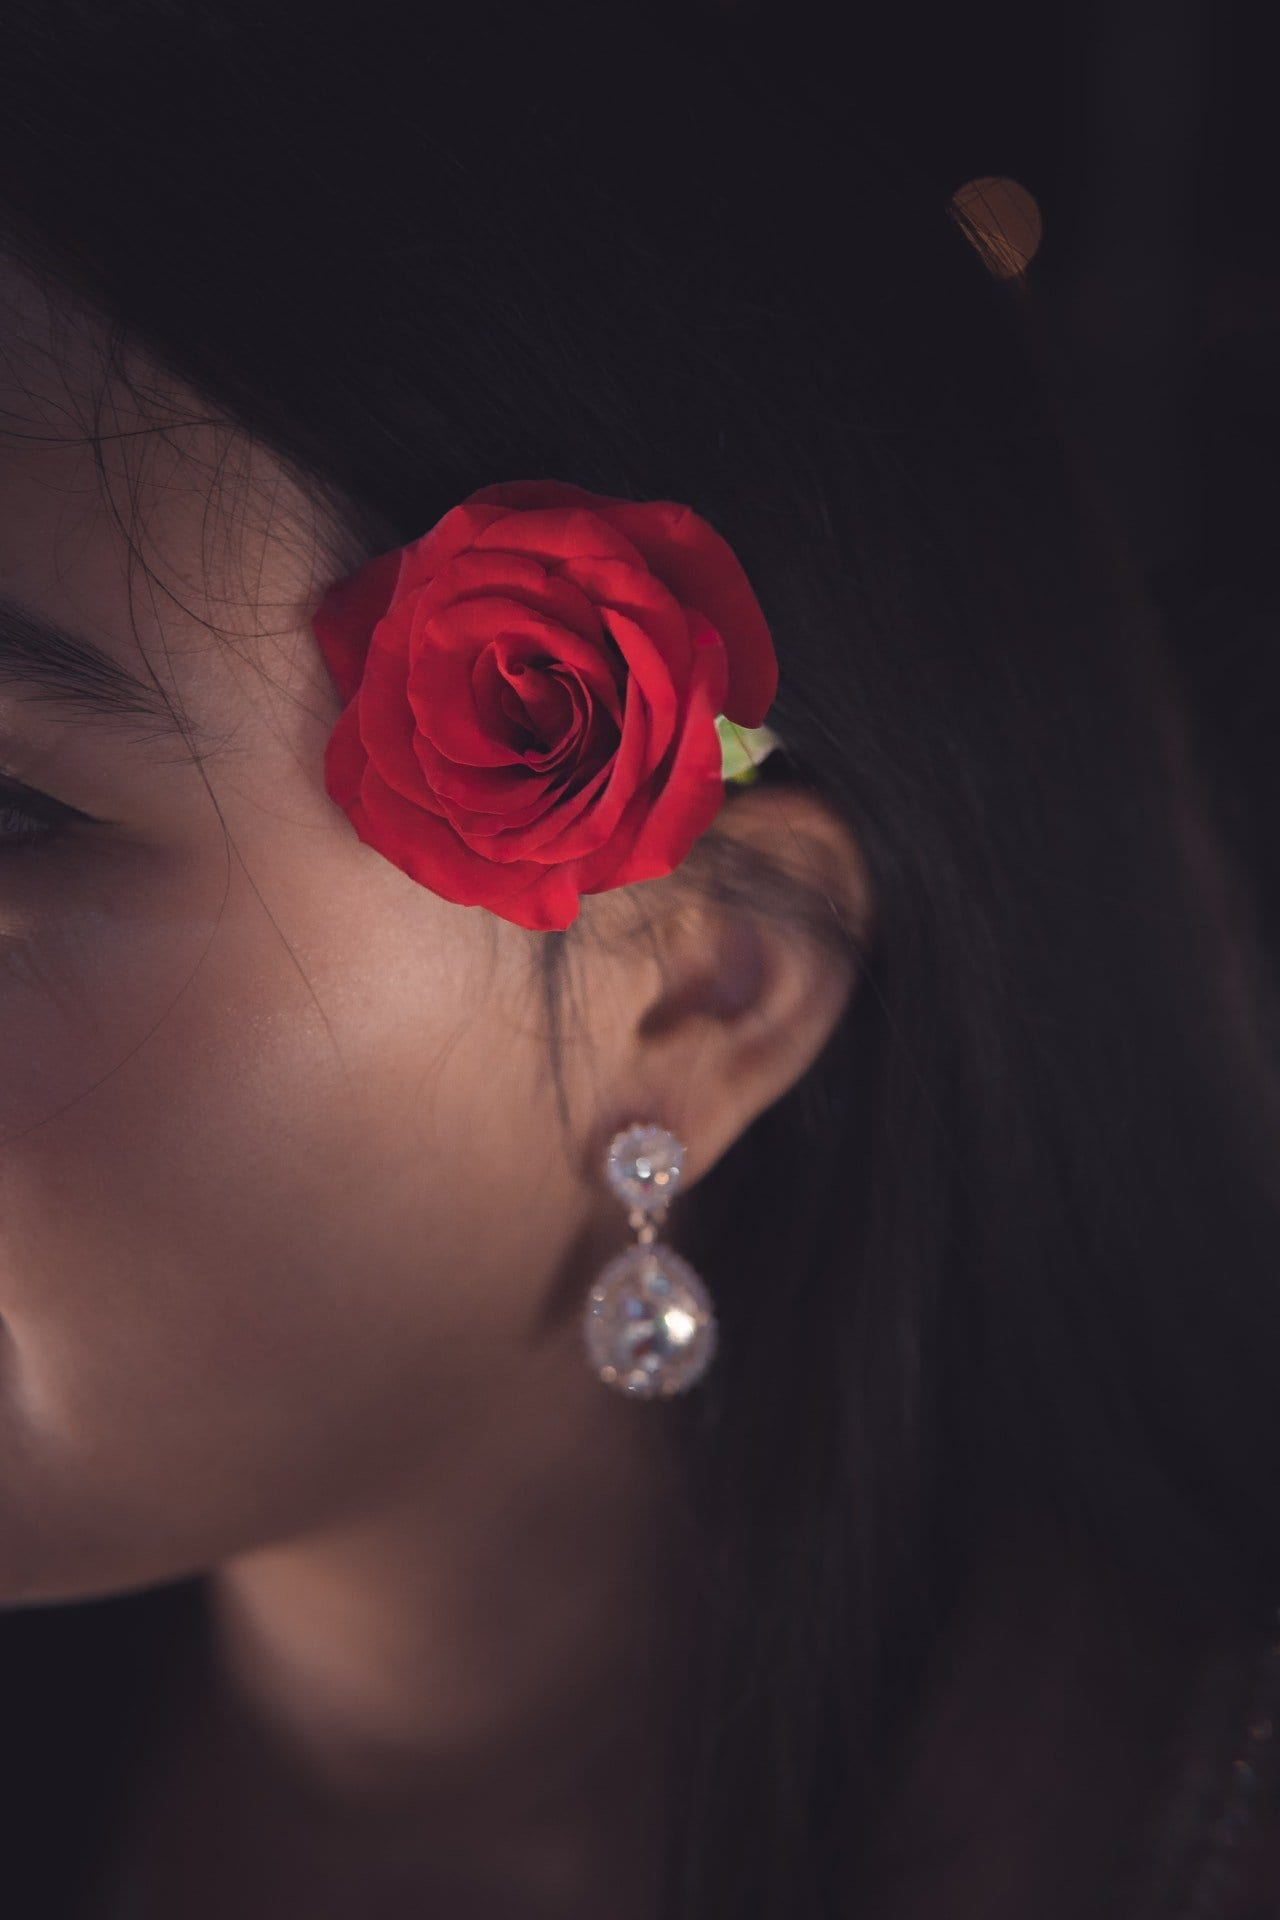 red-rose-on-women-s-ear-